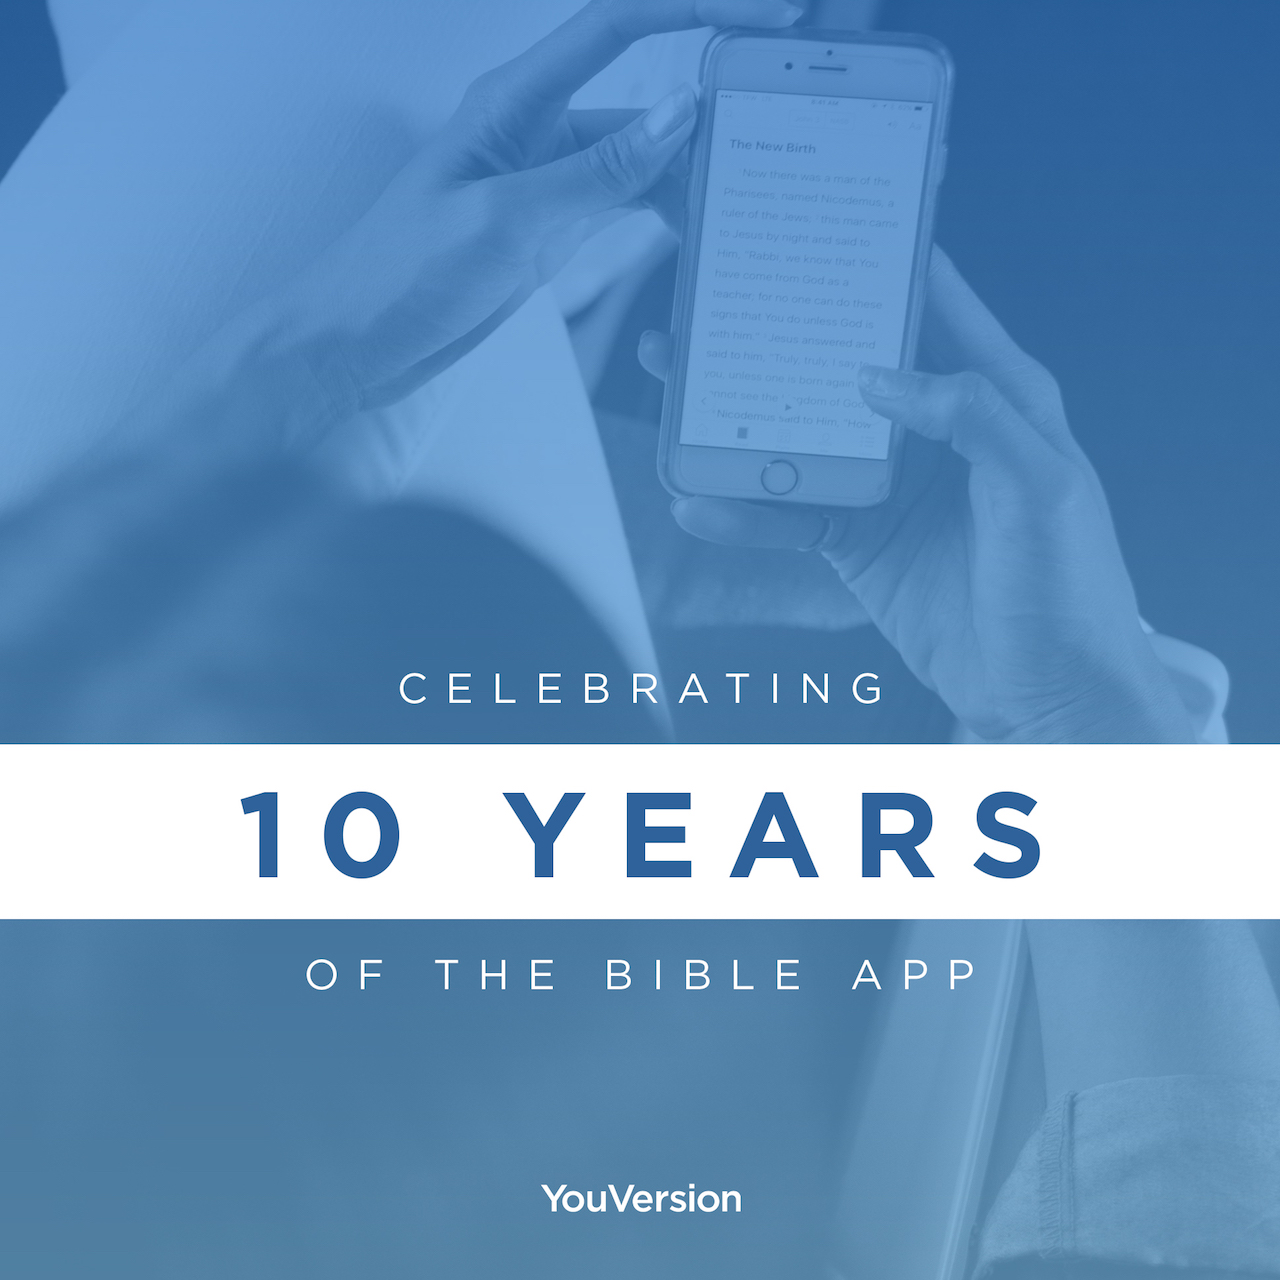 Today Is 10-Year Anniversary of YouVersion Bible App